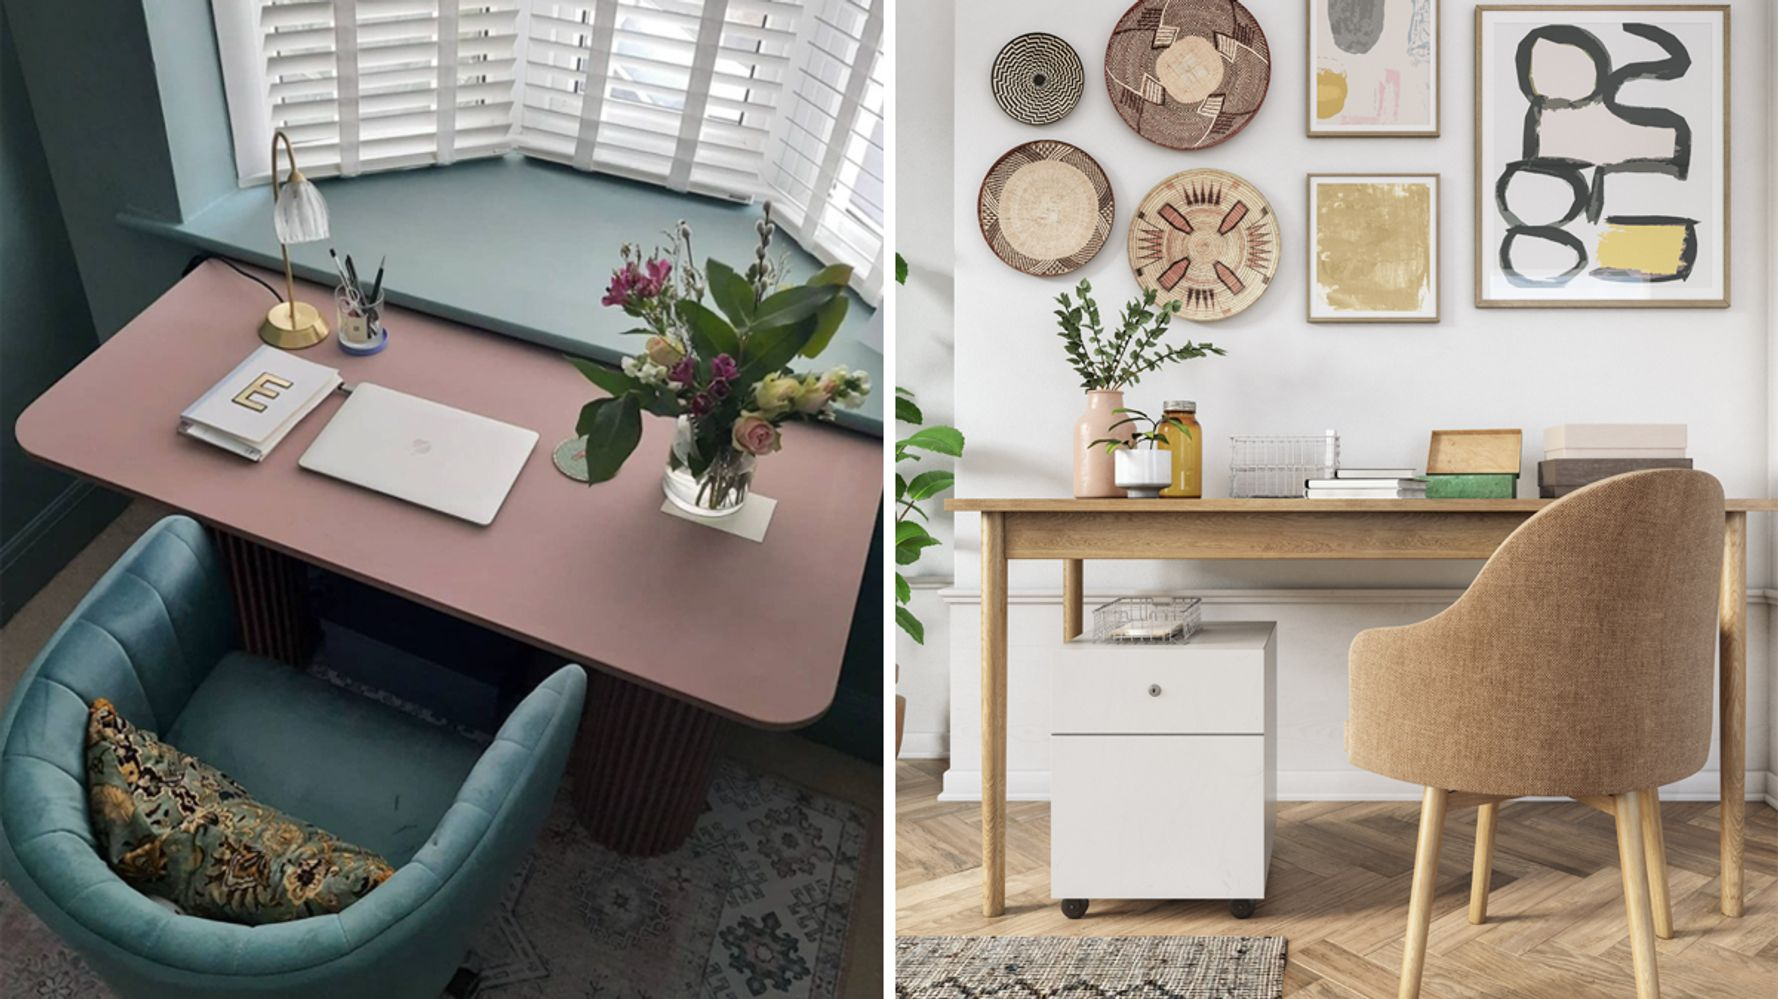 8 Dreamy Work From Home Set-Ups To Inspire Your Desk Space